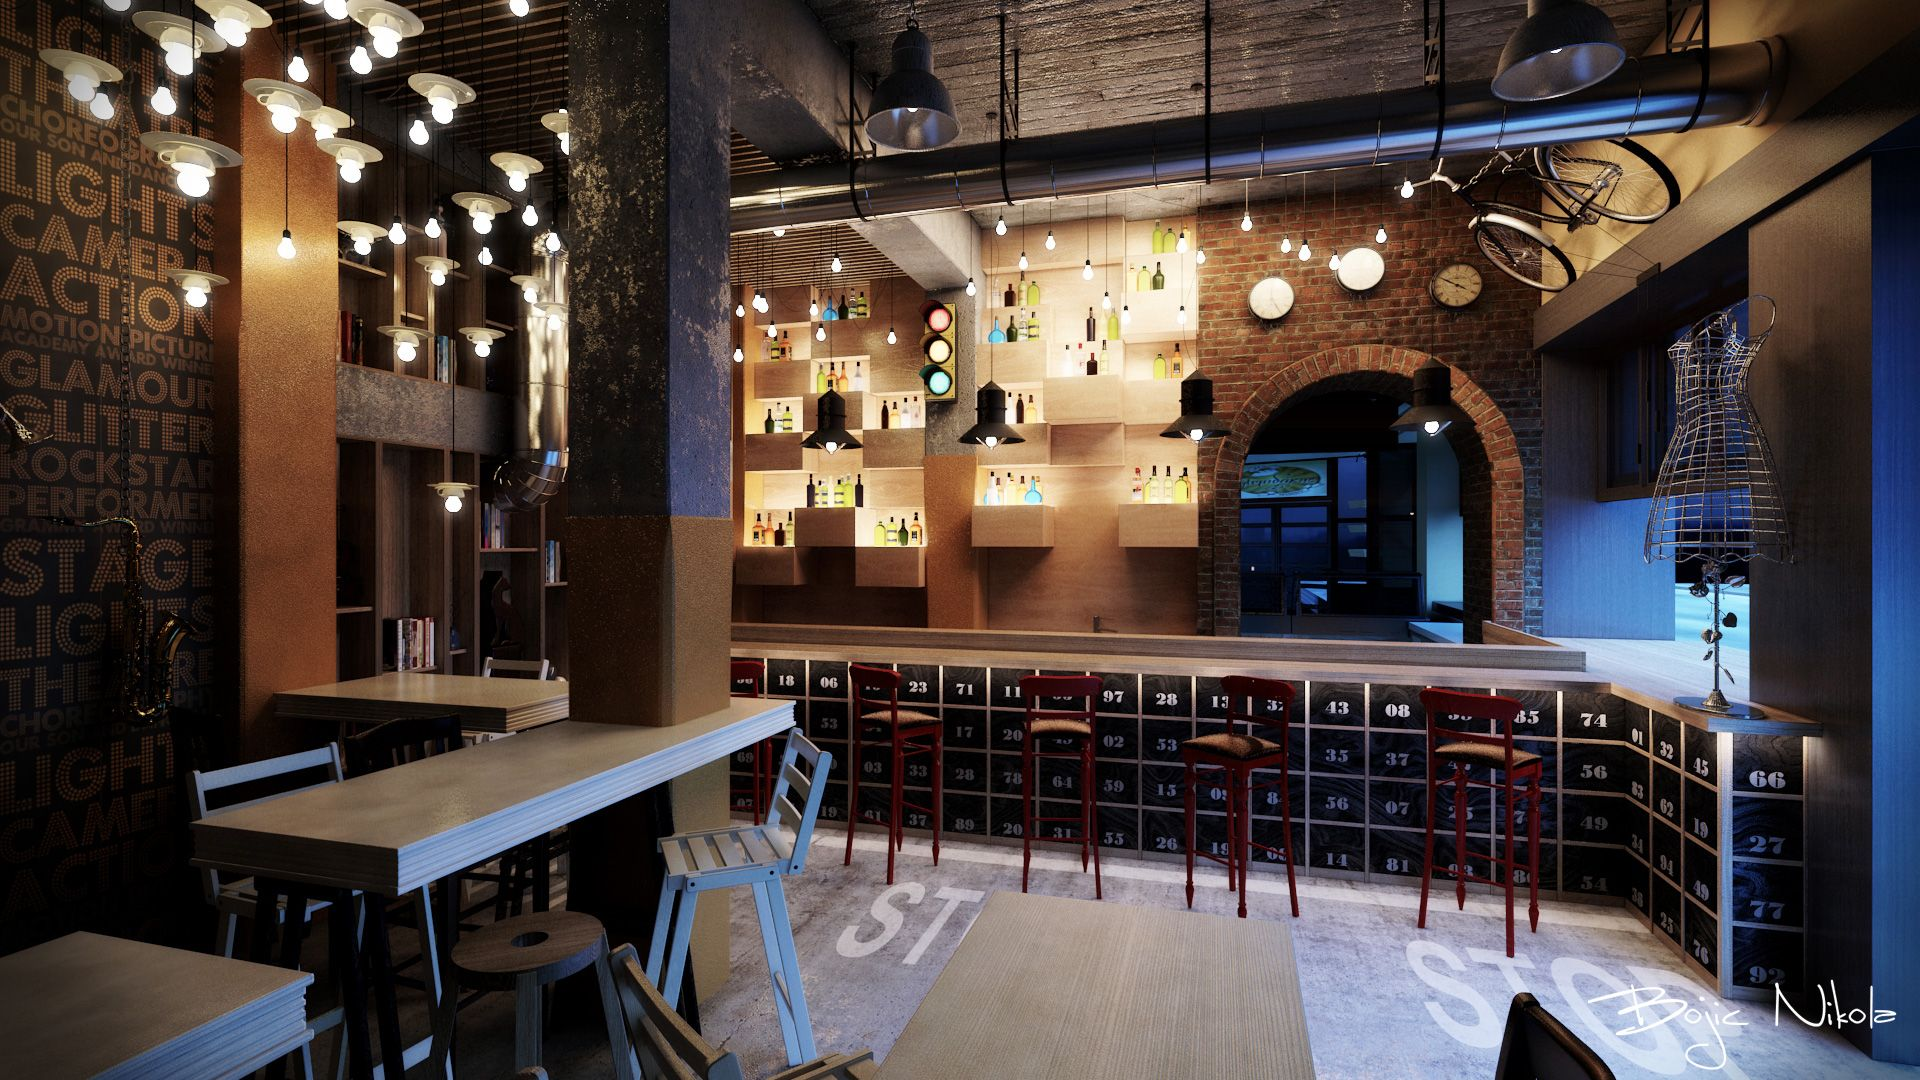 hospitality restaurant interior design bar industrial pendant